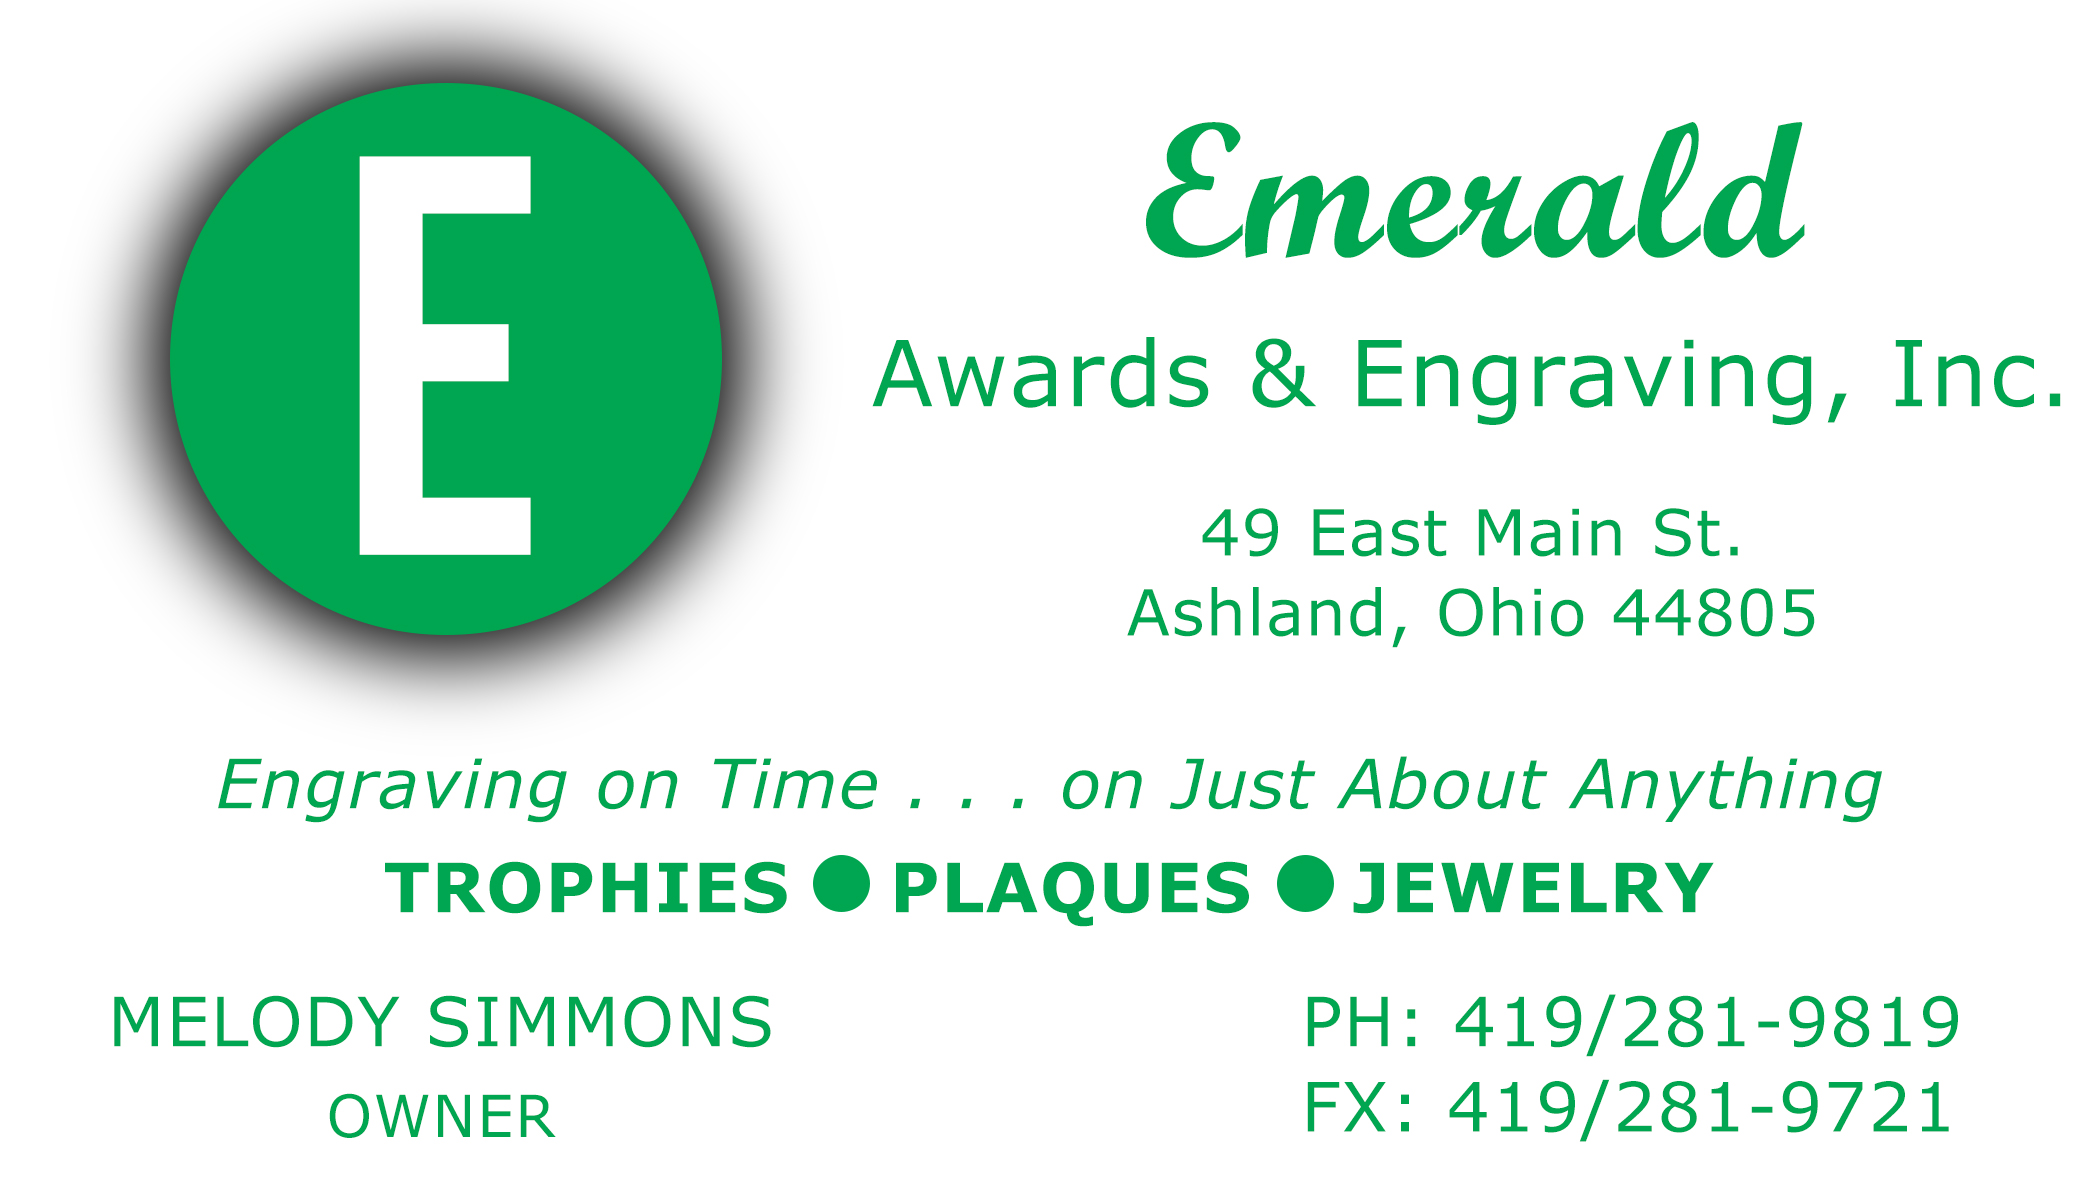 Emerald Awards